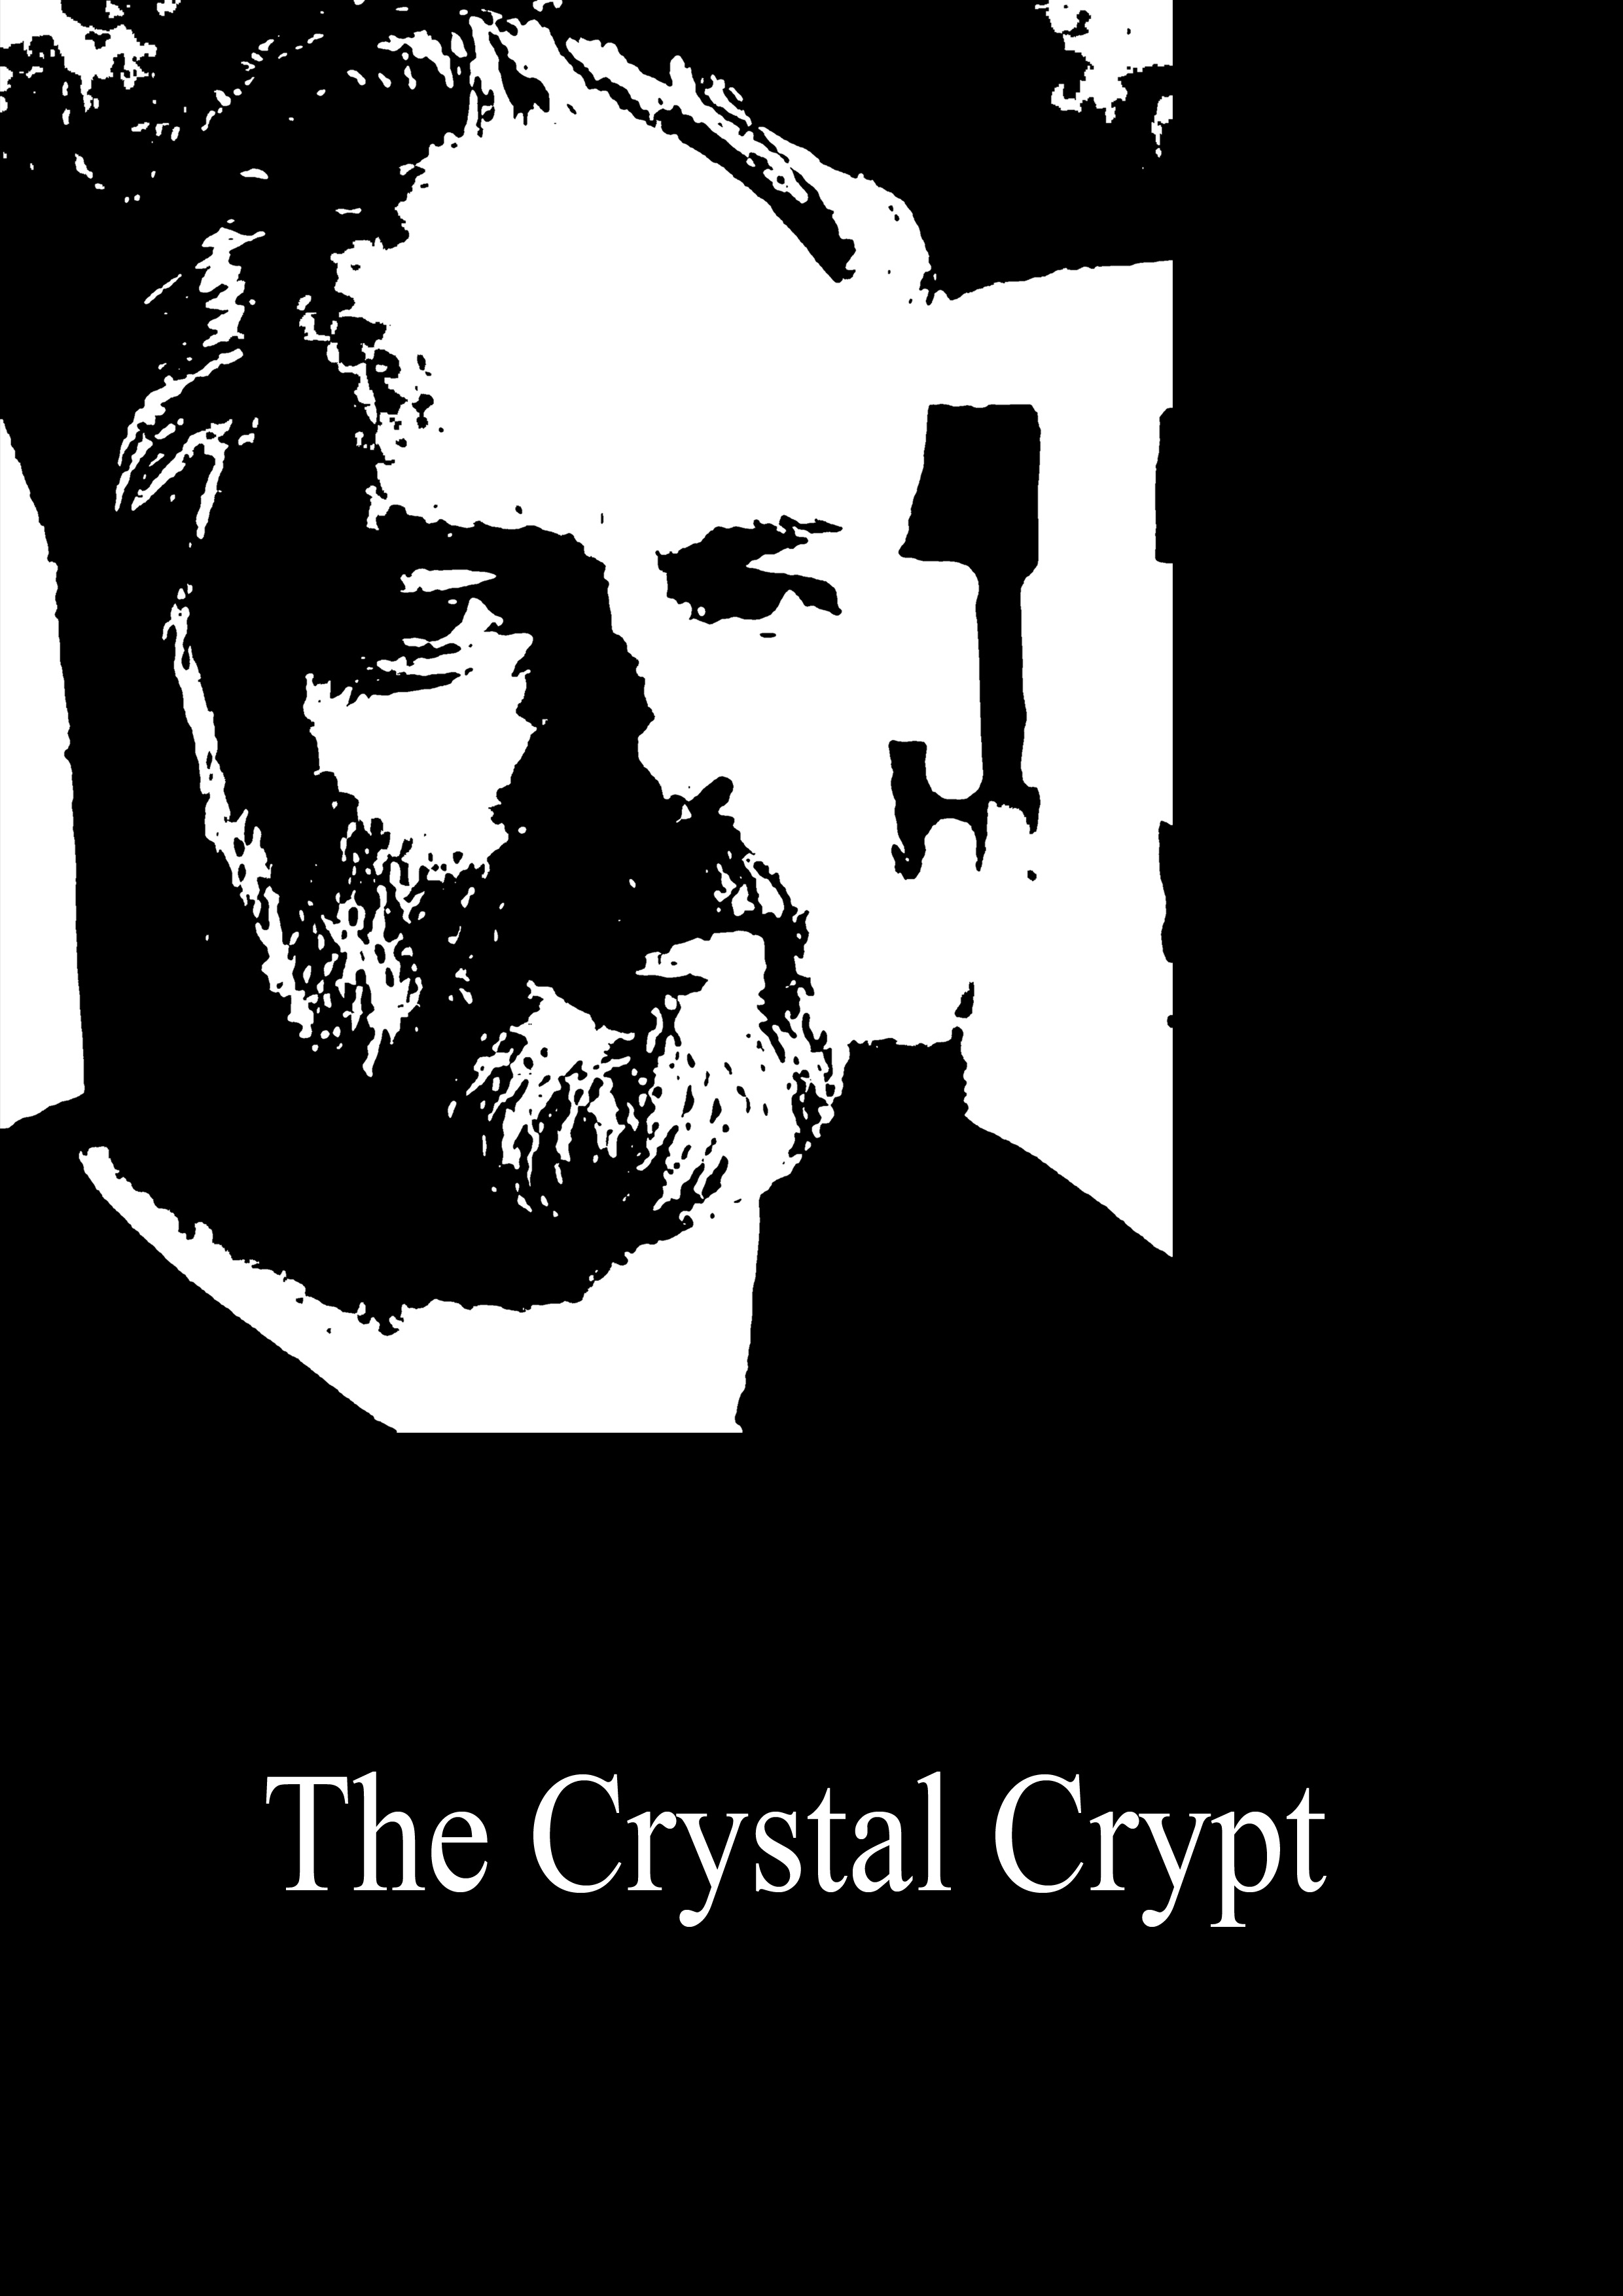 The Crystal Crypt By: Philip K. Dick